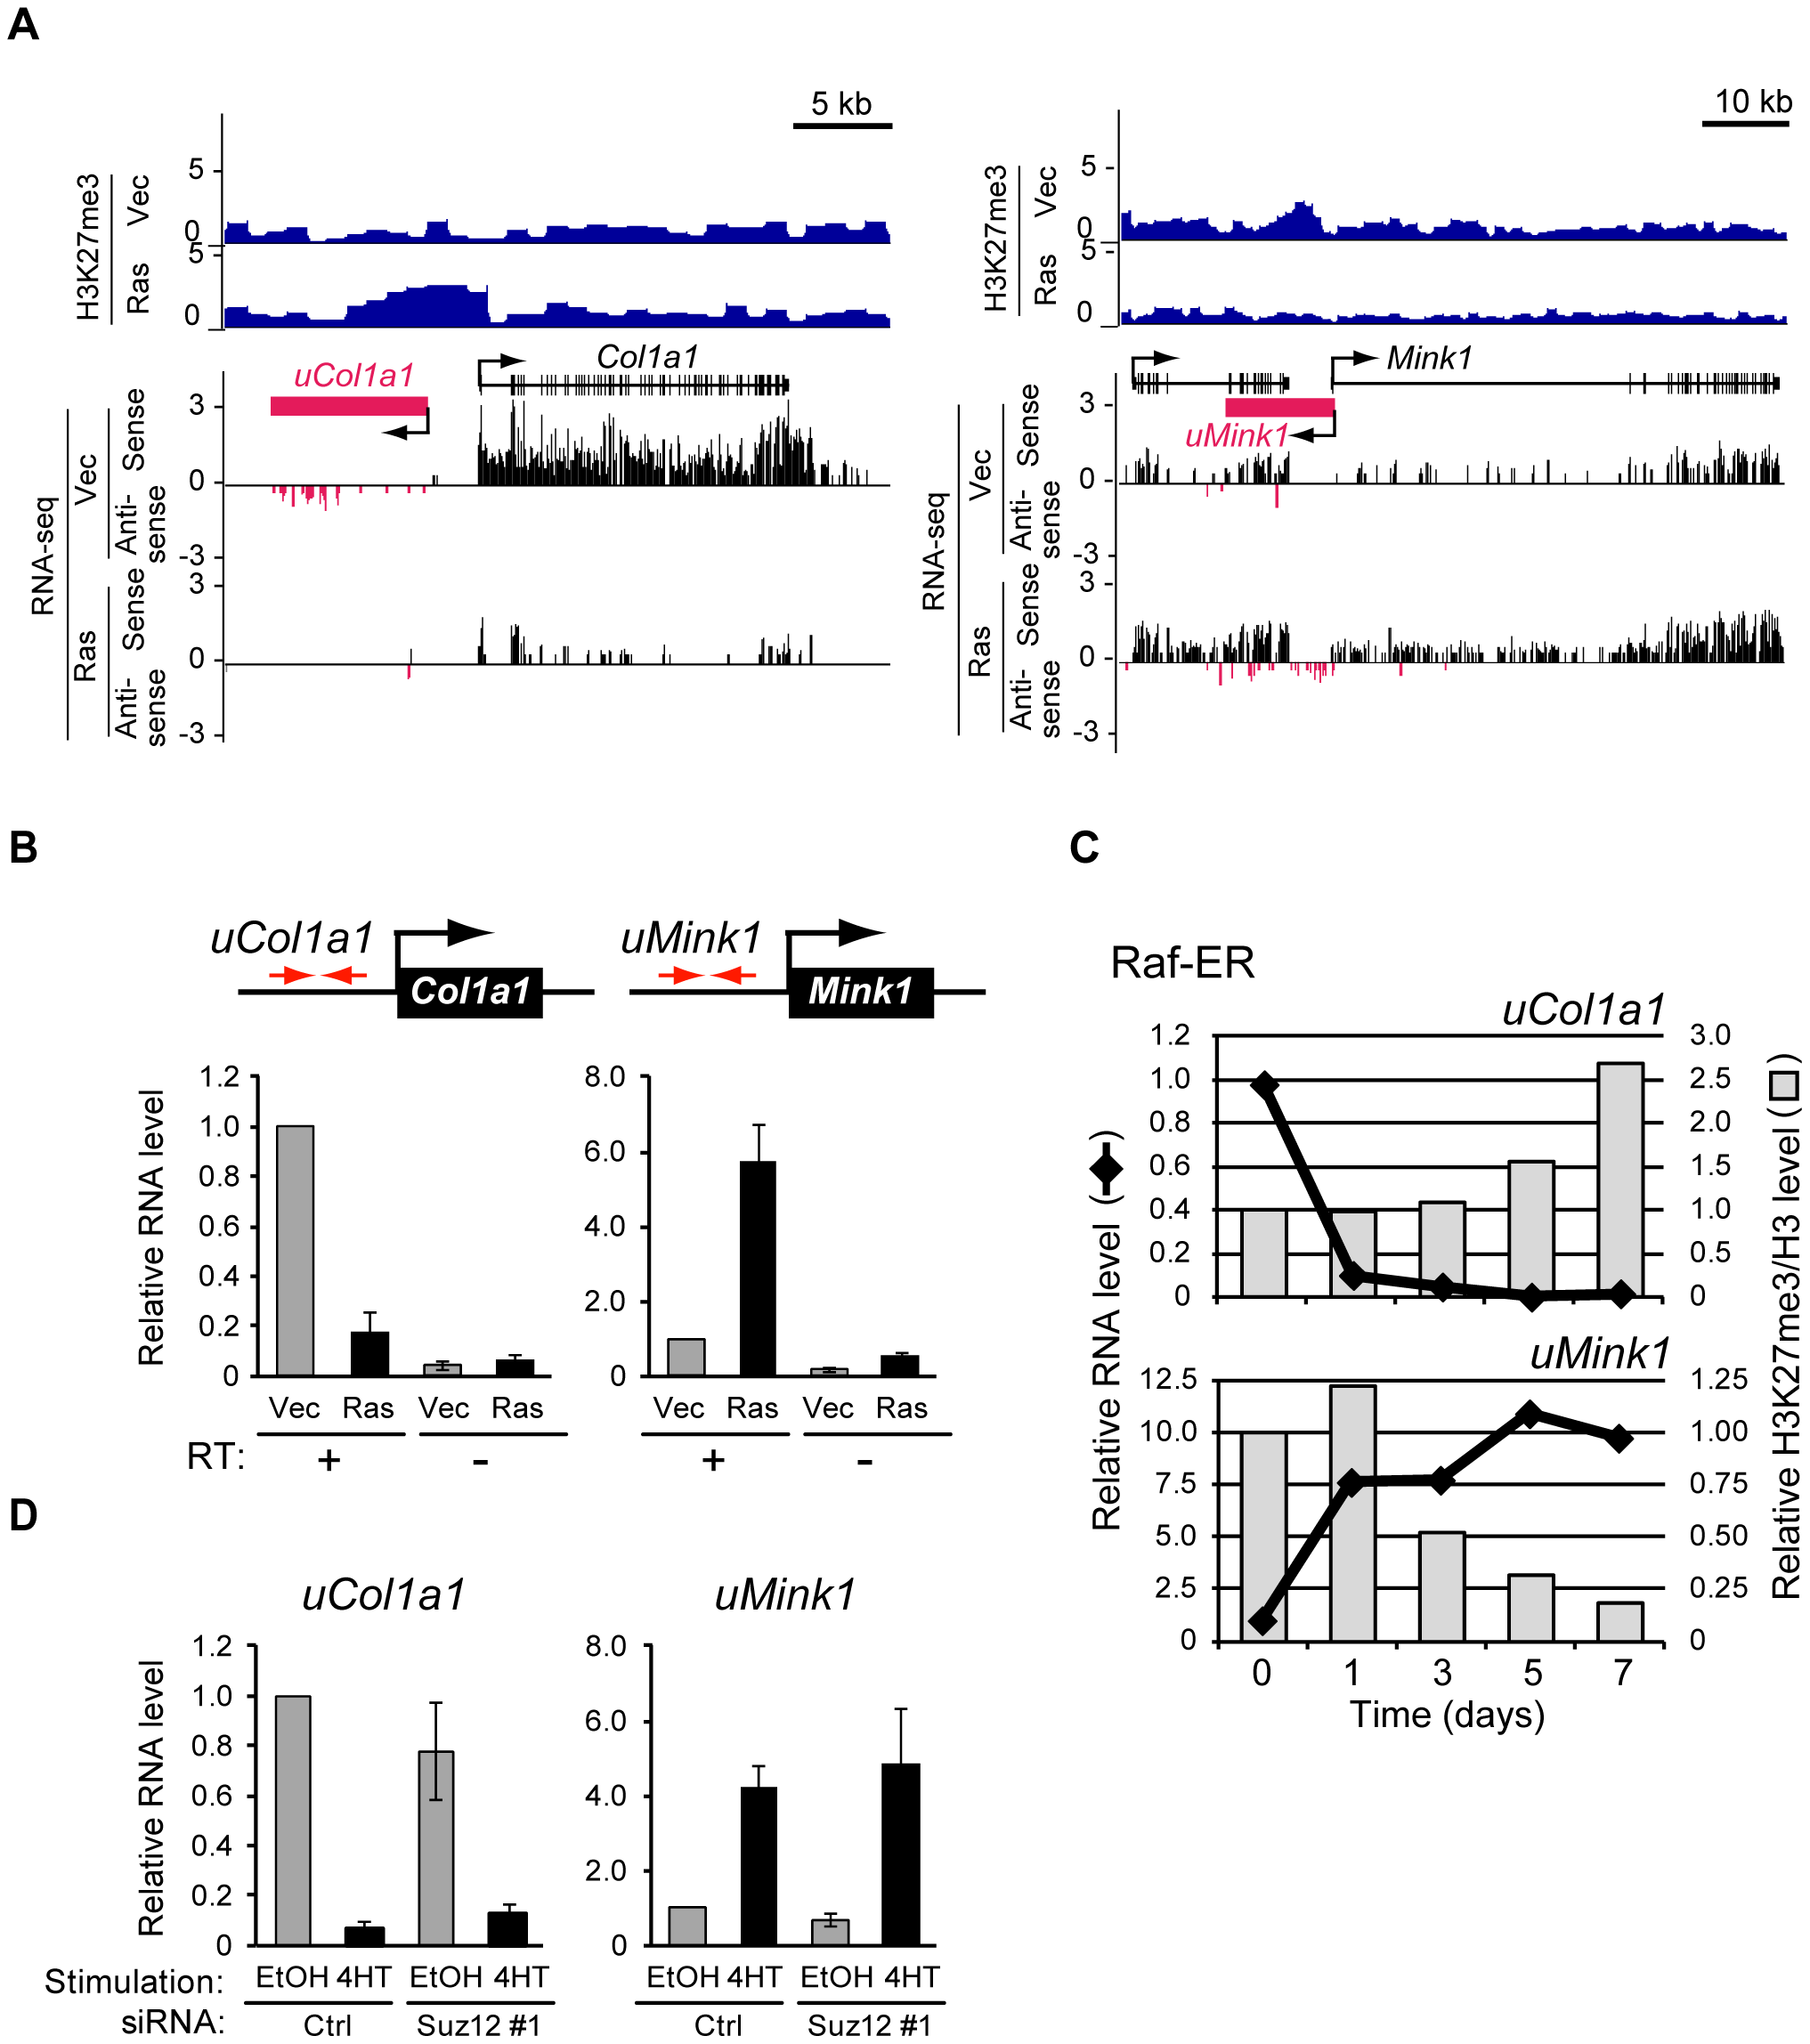 Signaling-induced changes in the production of novel transcripts from intergenic regions occur before changes in H3K27me3 level.